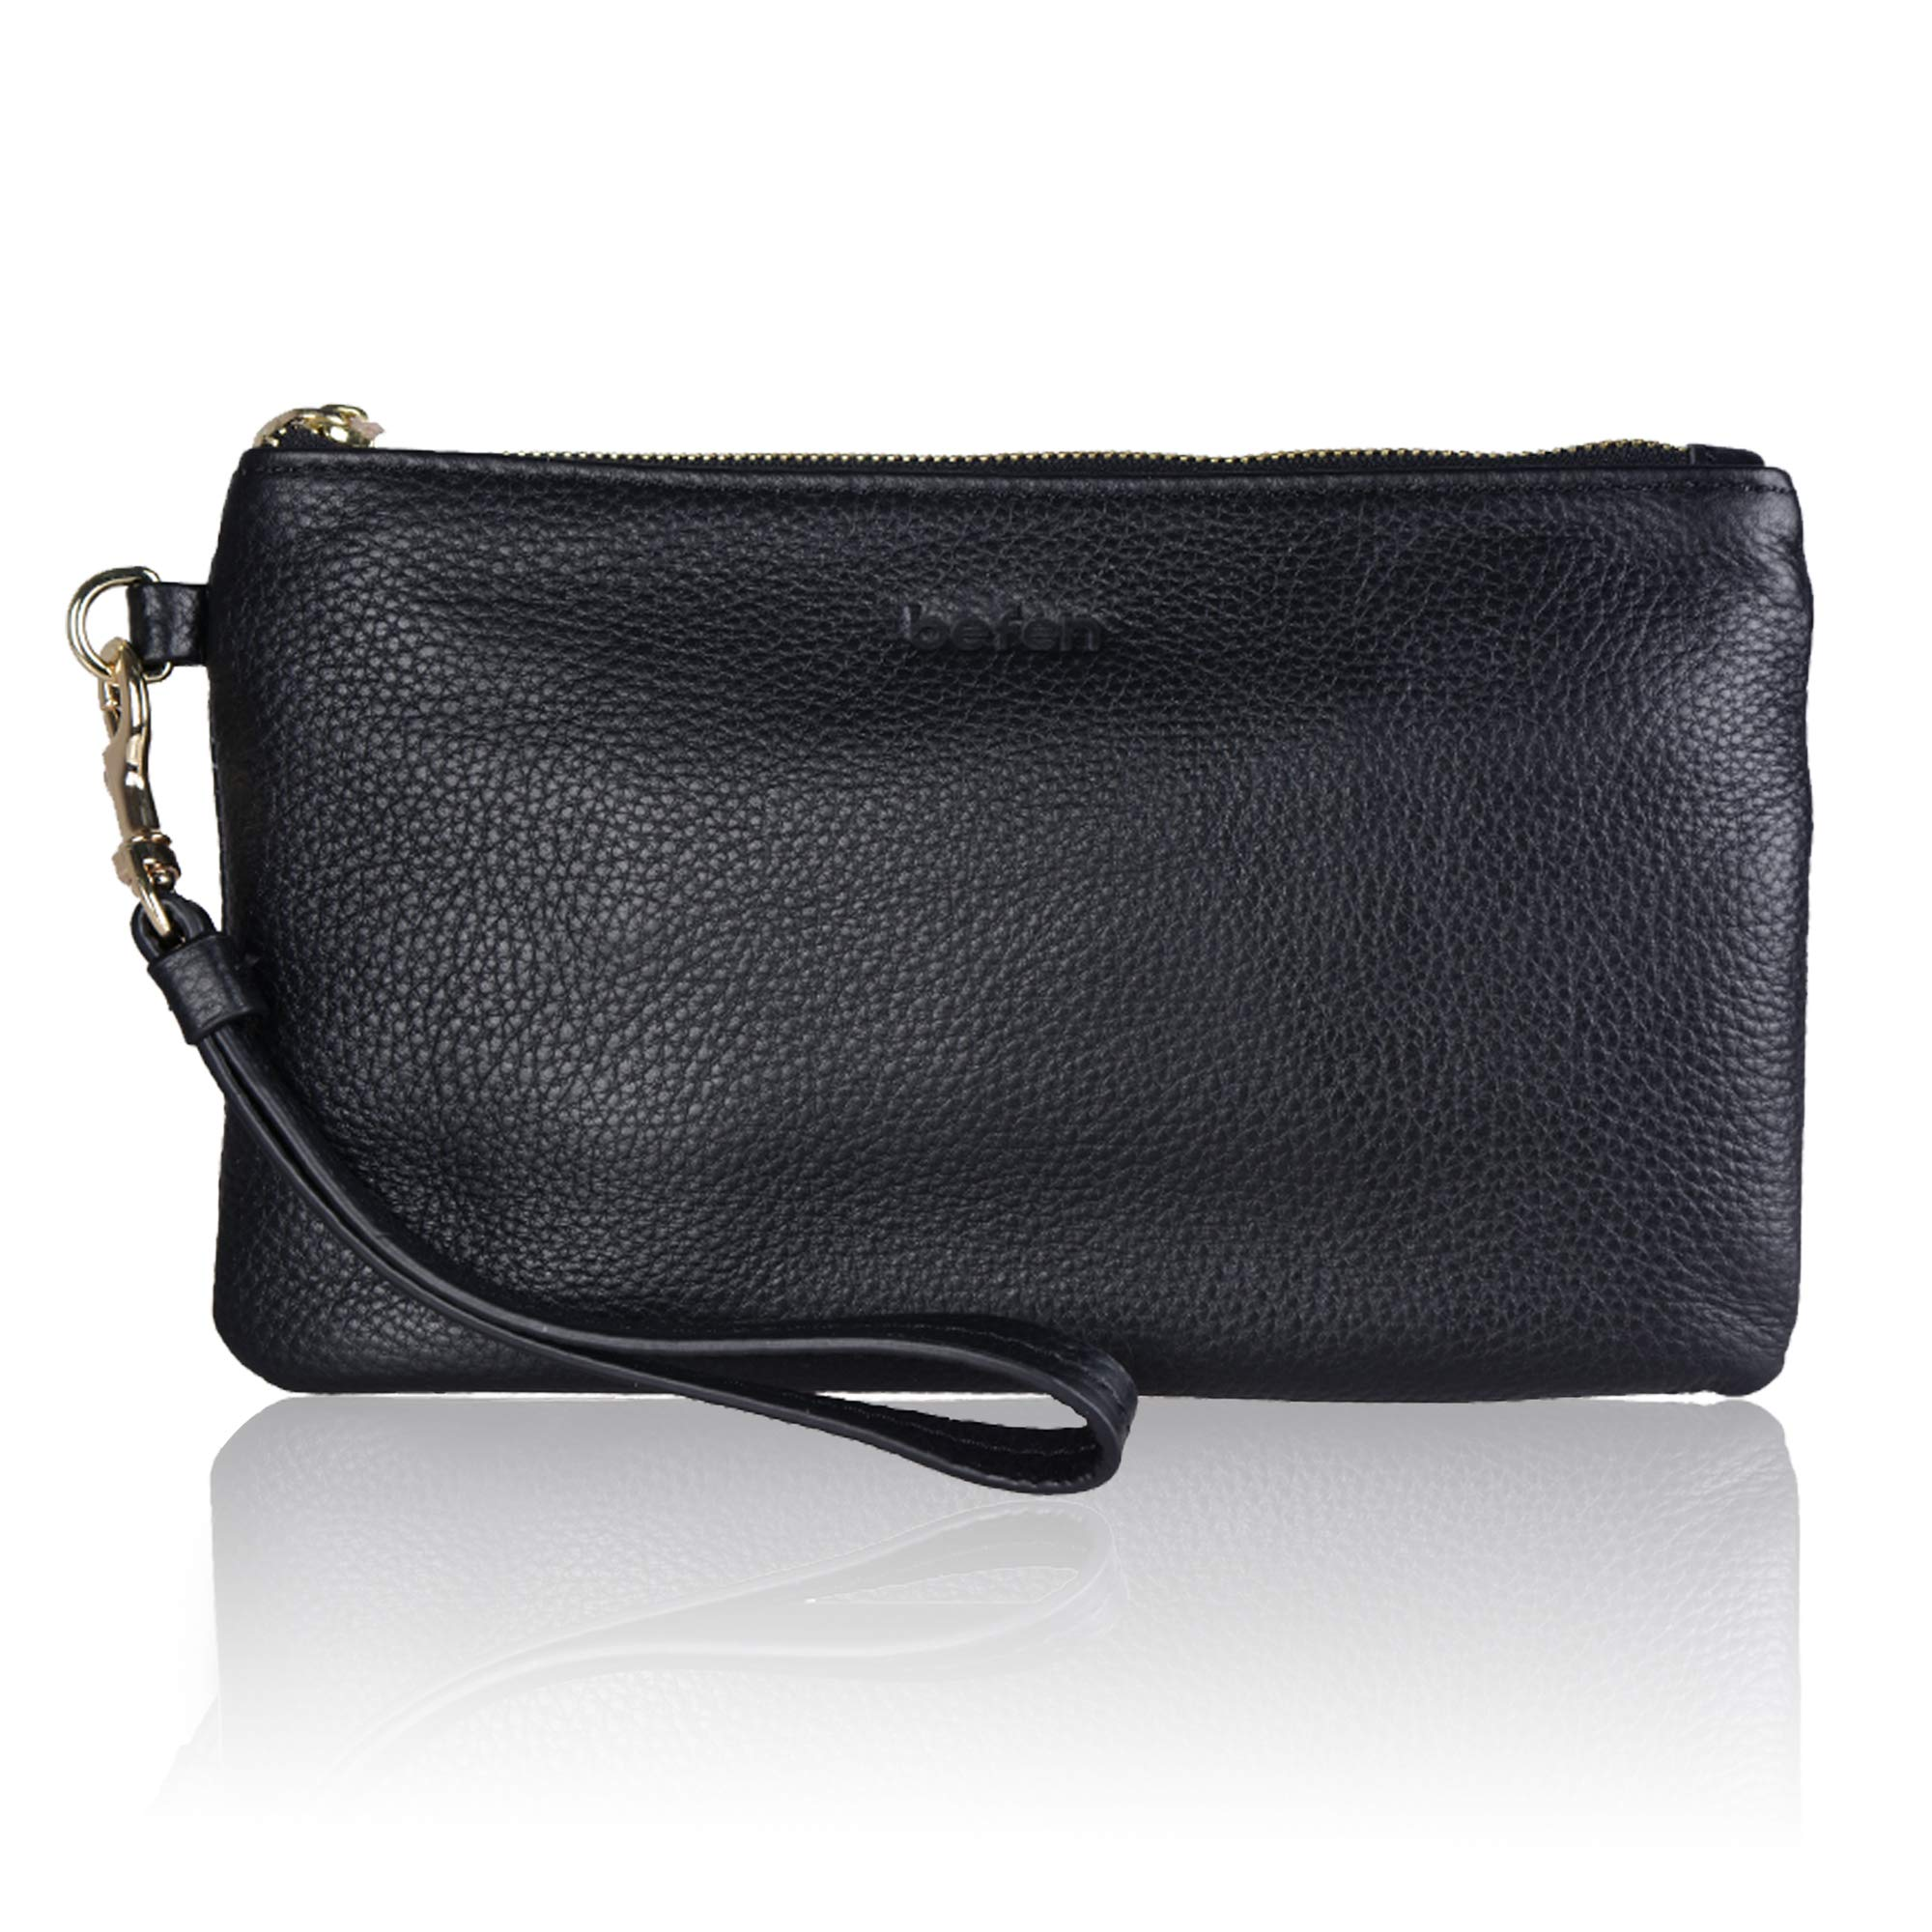 Befen Women Genuine Leather Clutch Wallet, Smartphone Wristlet Purse - Black by befen (Image #1)